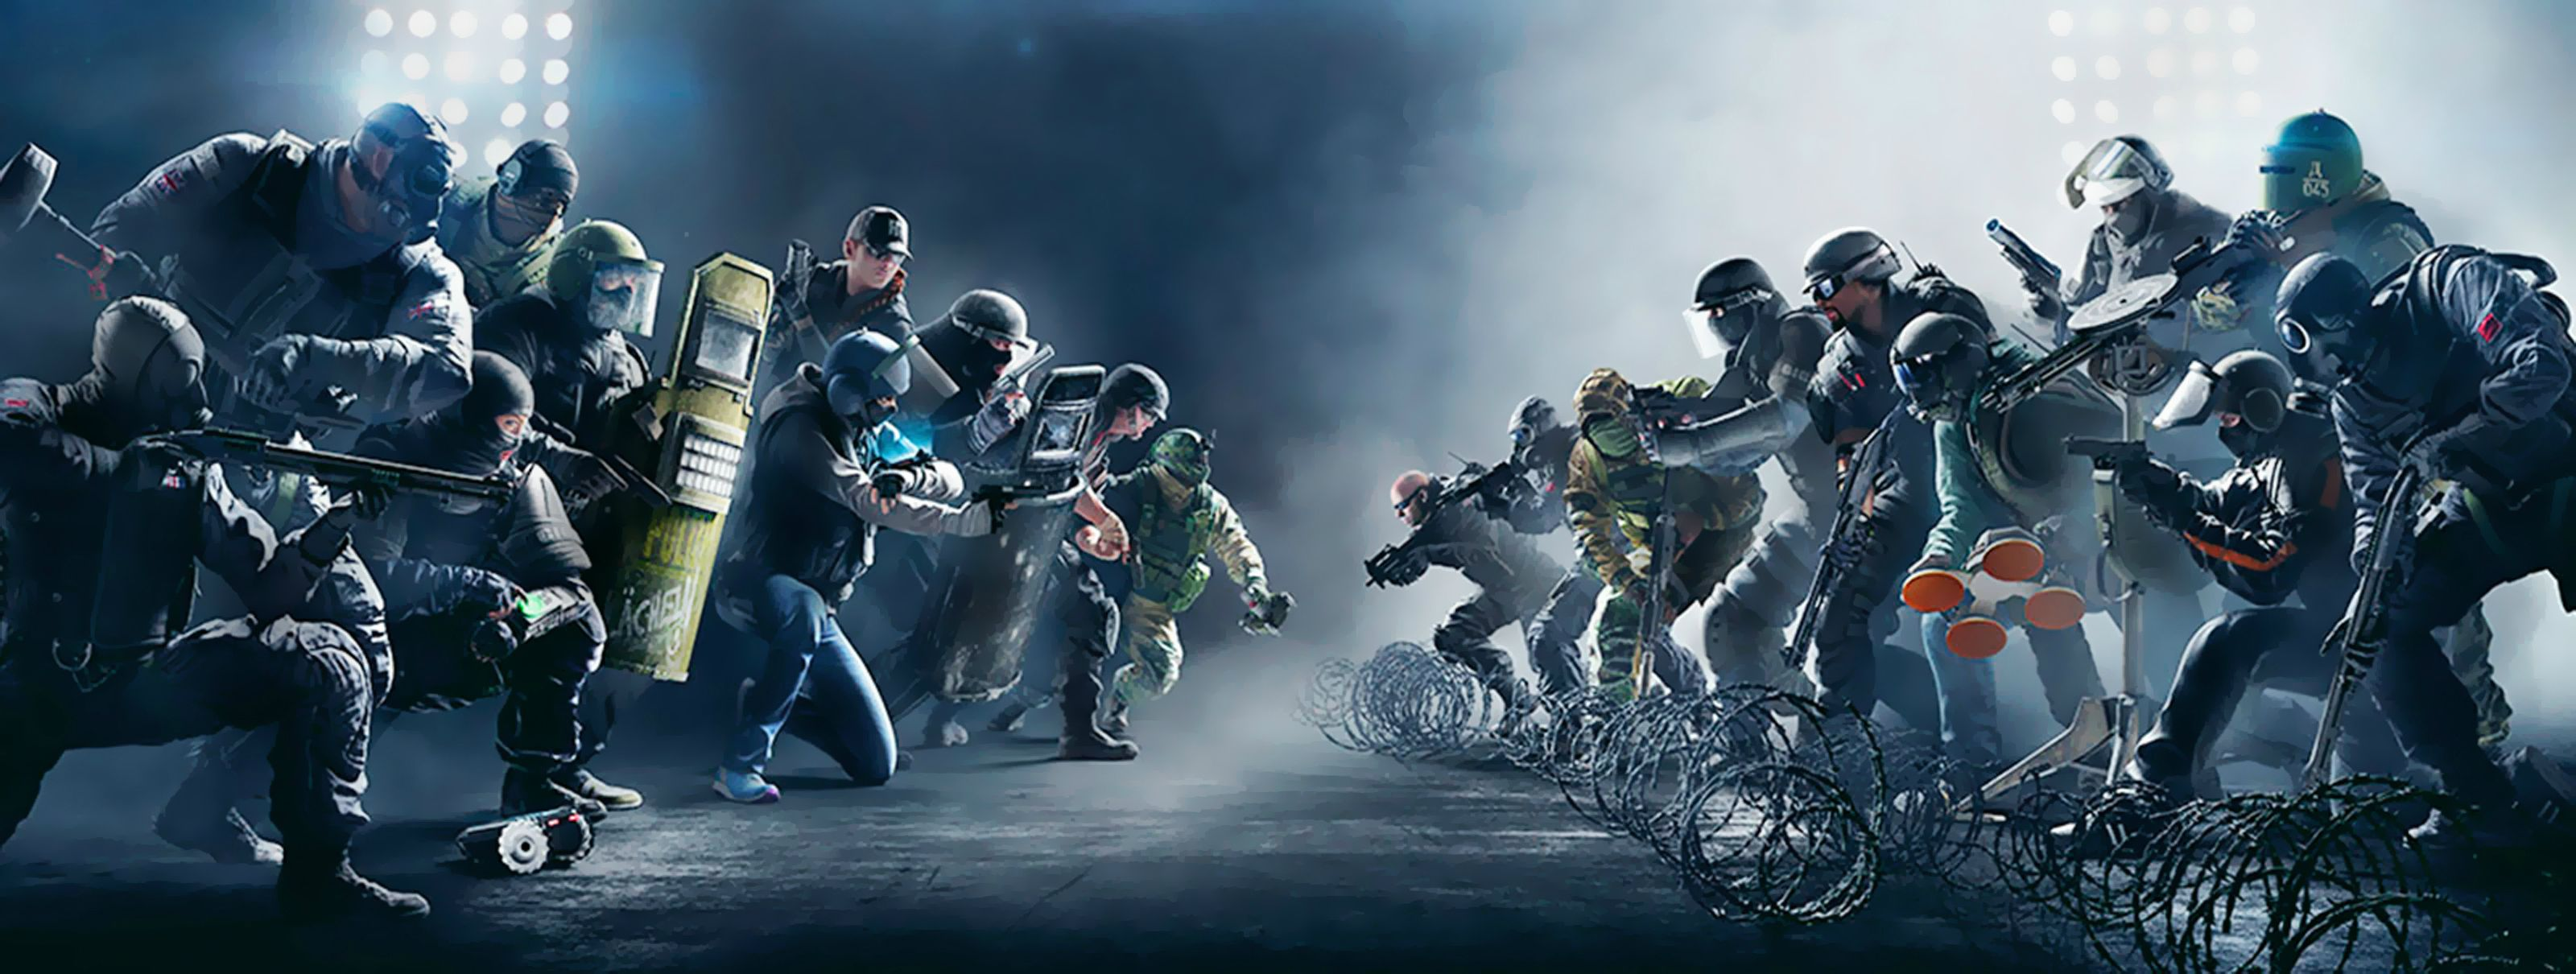 Best Rainbow Six Siege Background 21252 Hd Wallpaper